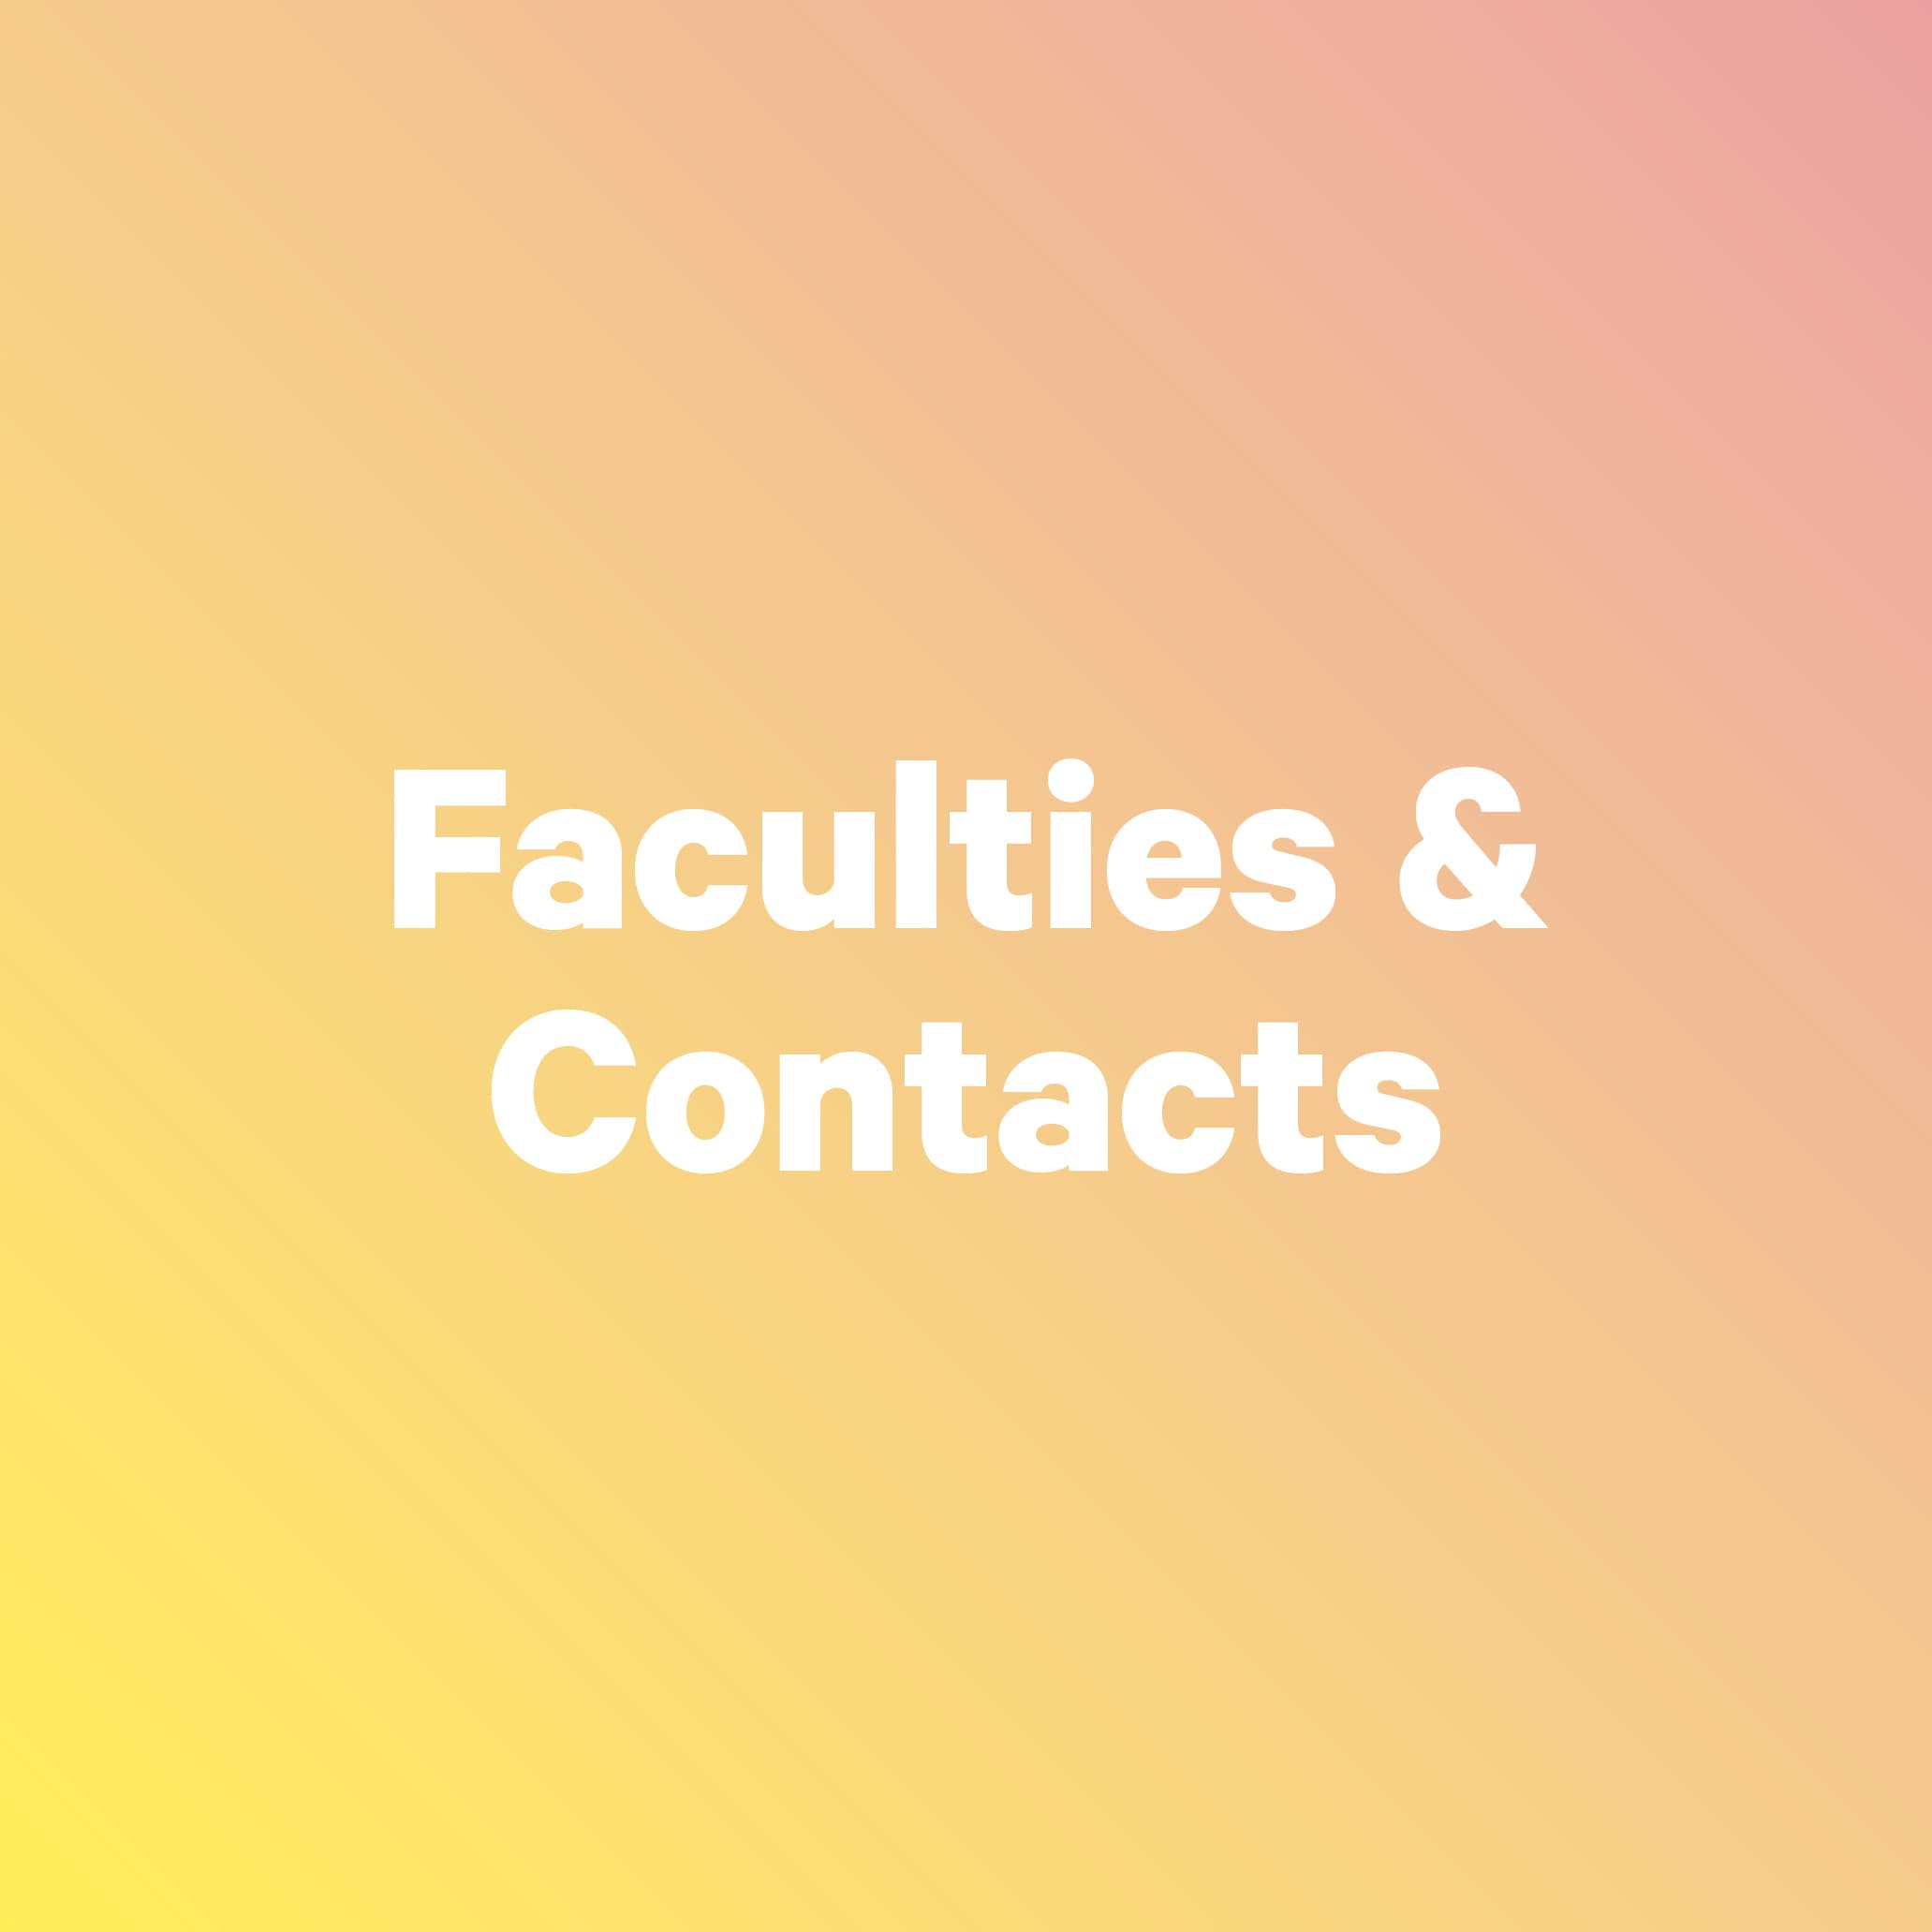 Faculties & contacts